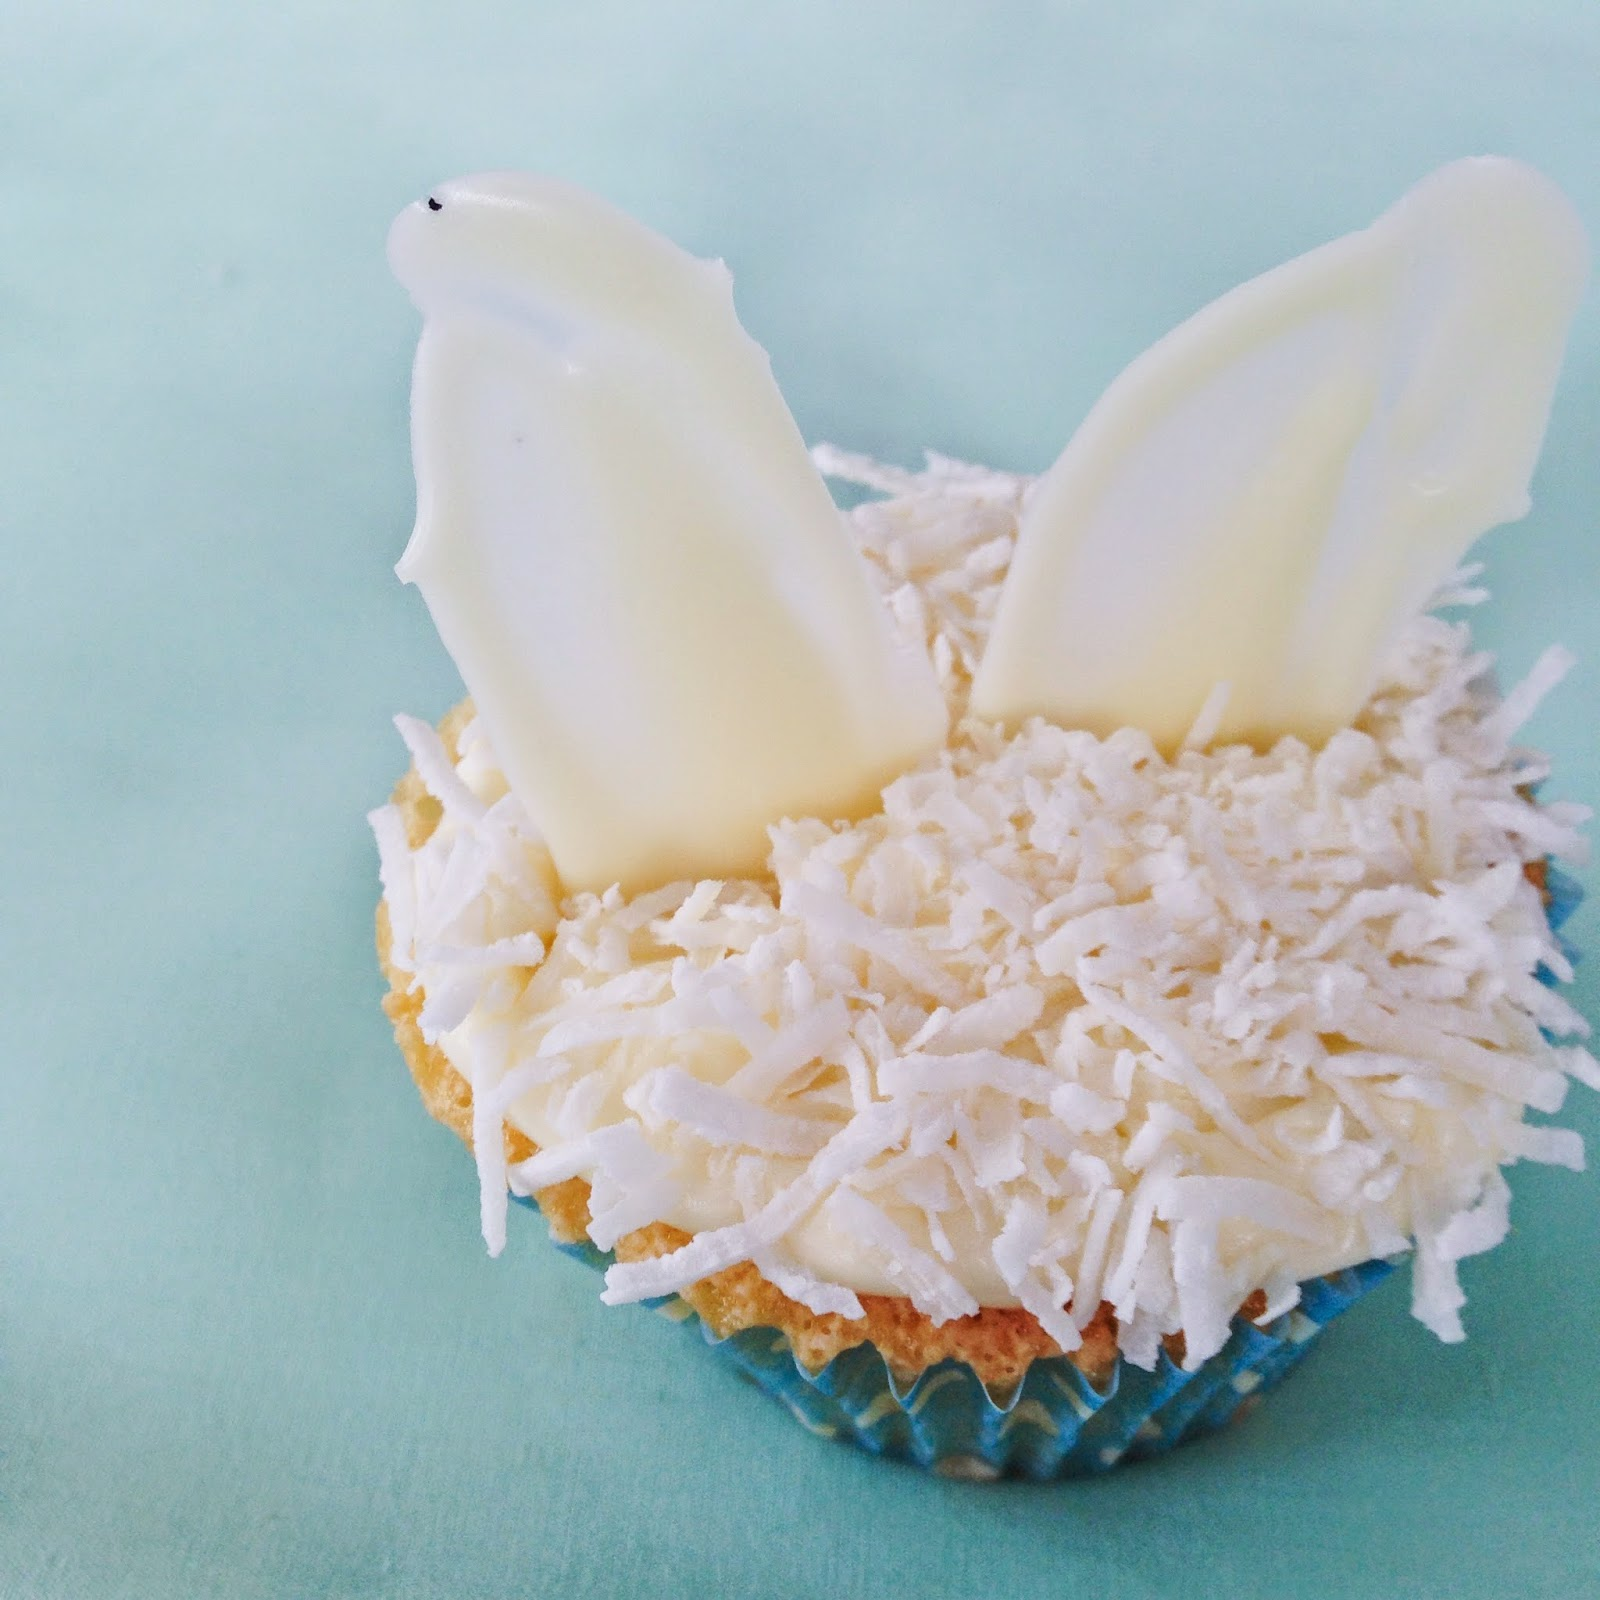 GoodFoodWeek - Gluten Free White Chocolate Bunny Cupcakes